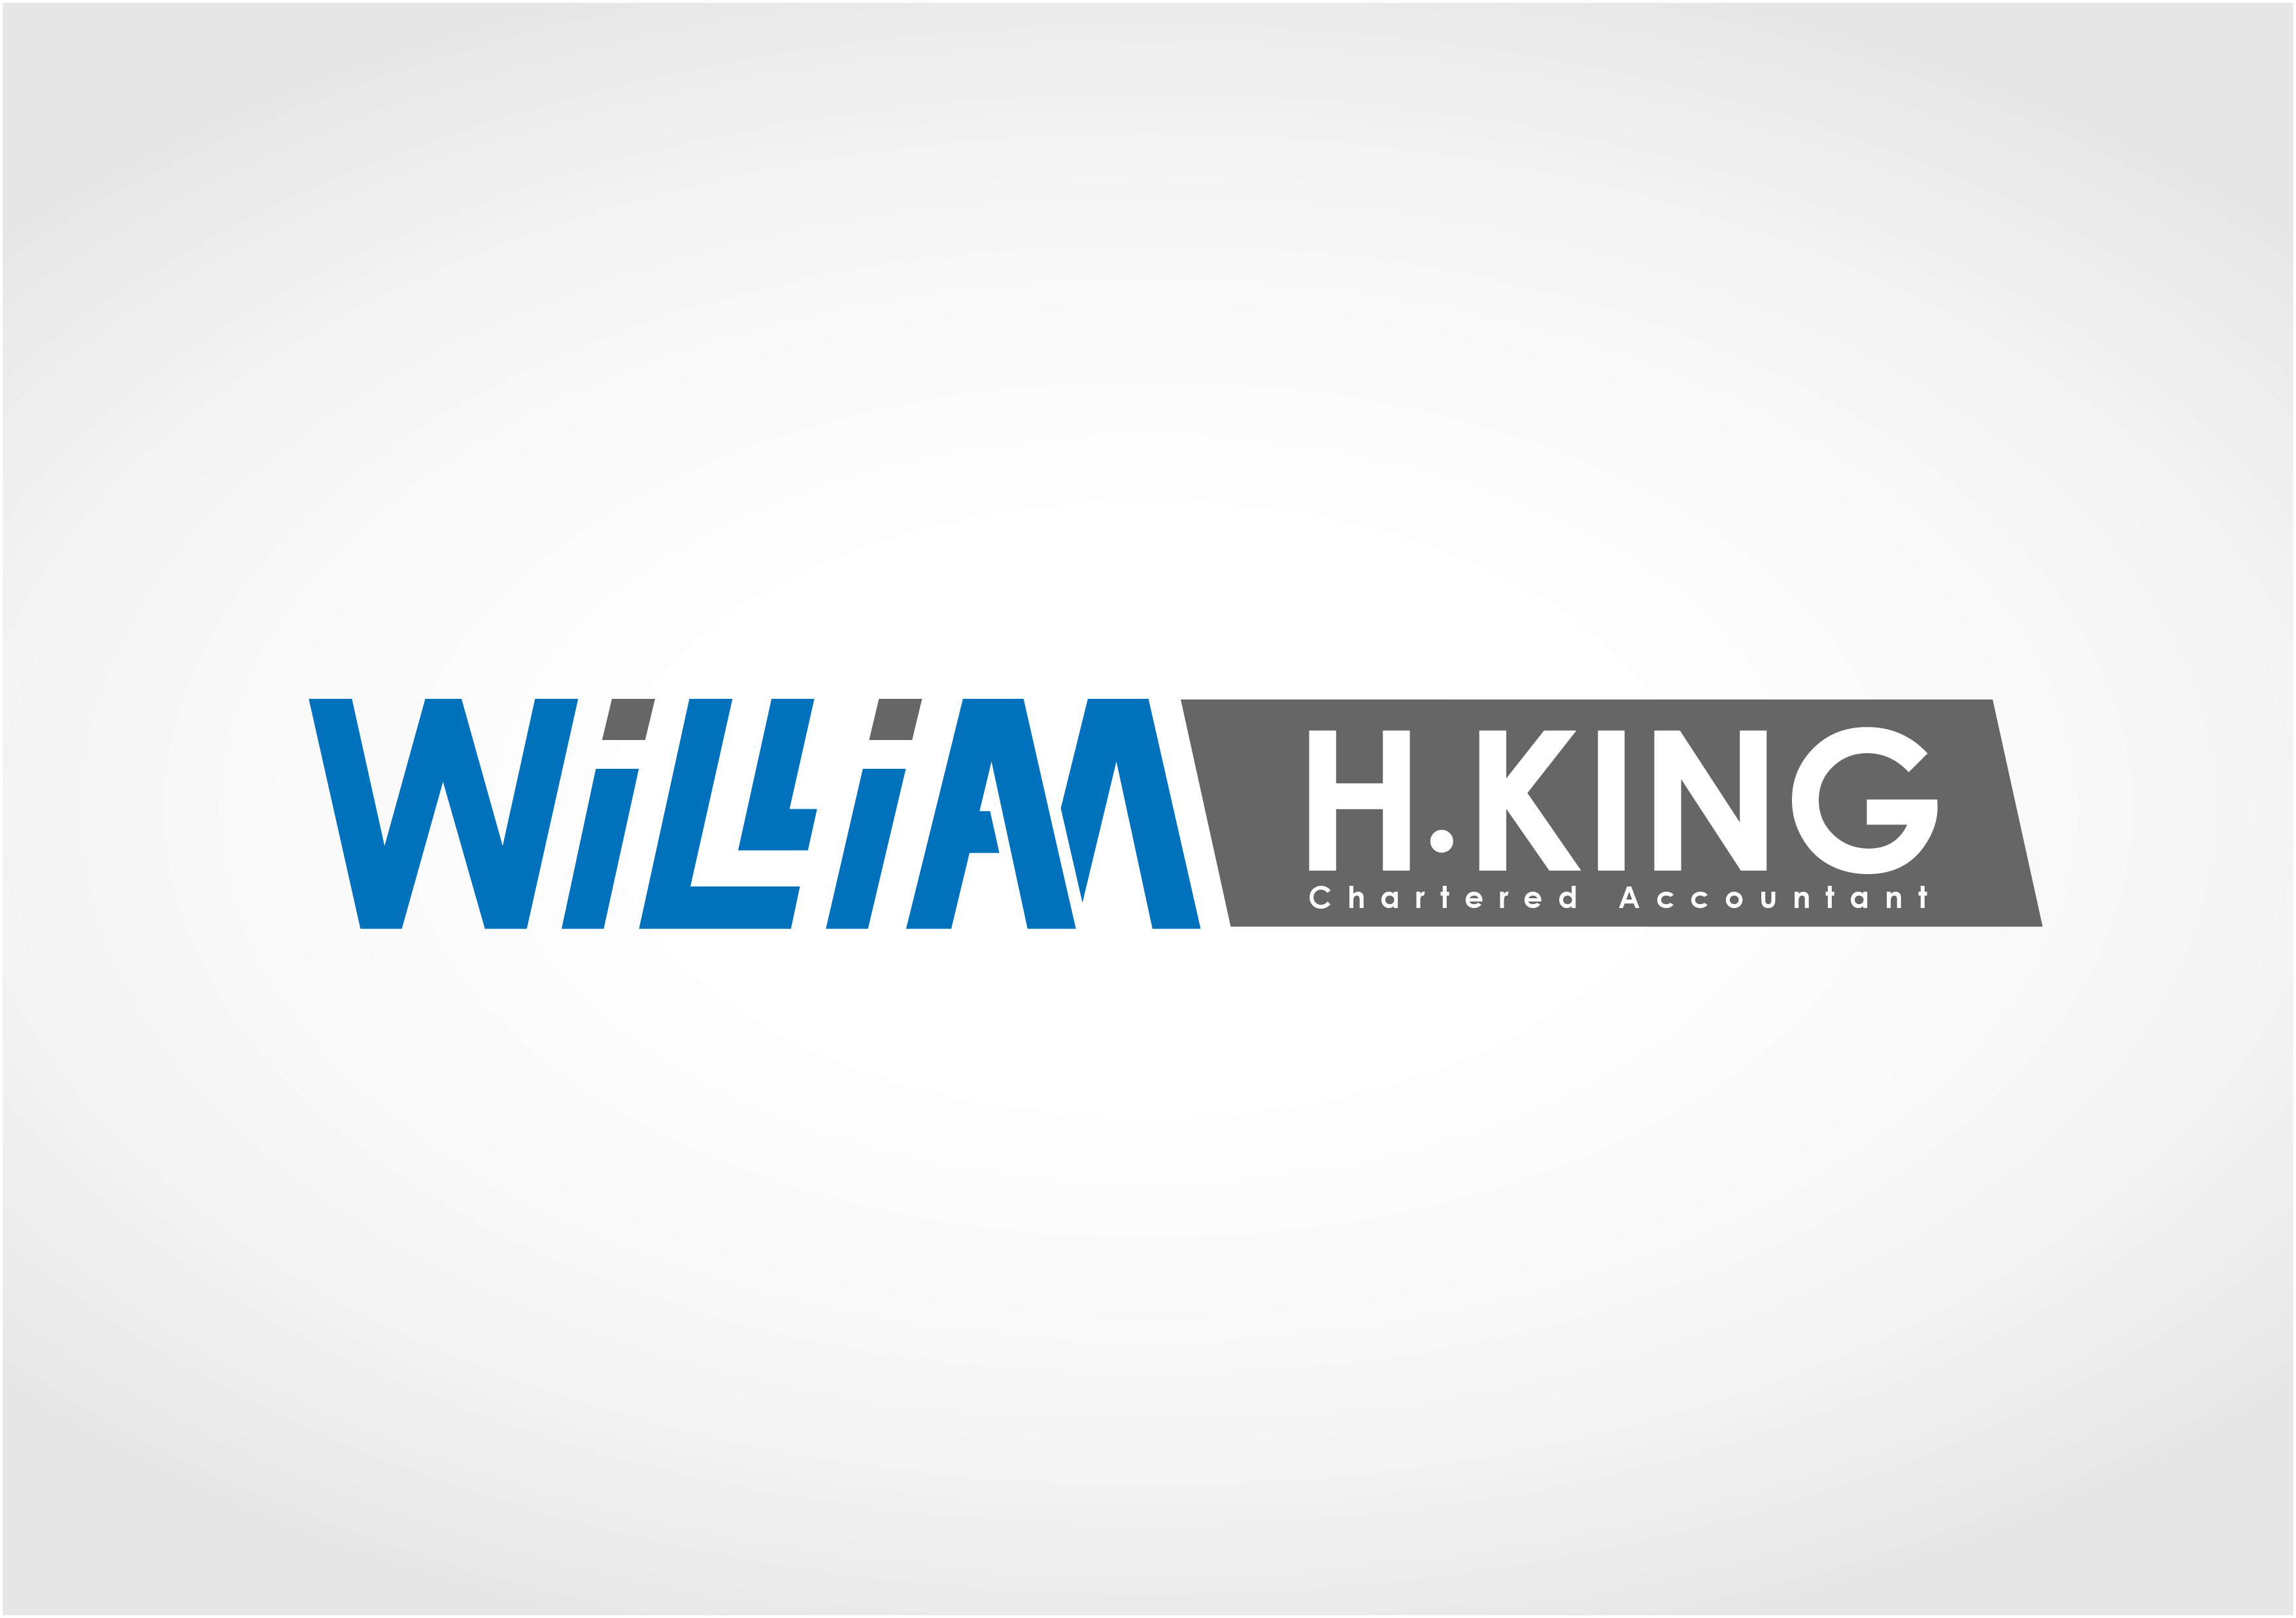 Logo Design by 3draw - Entry No. 19 in the Logo Design Contest New Logo Design for William H. King, Chartered Accountant.